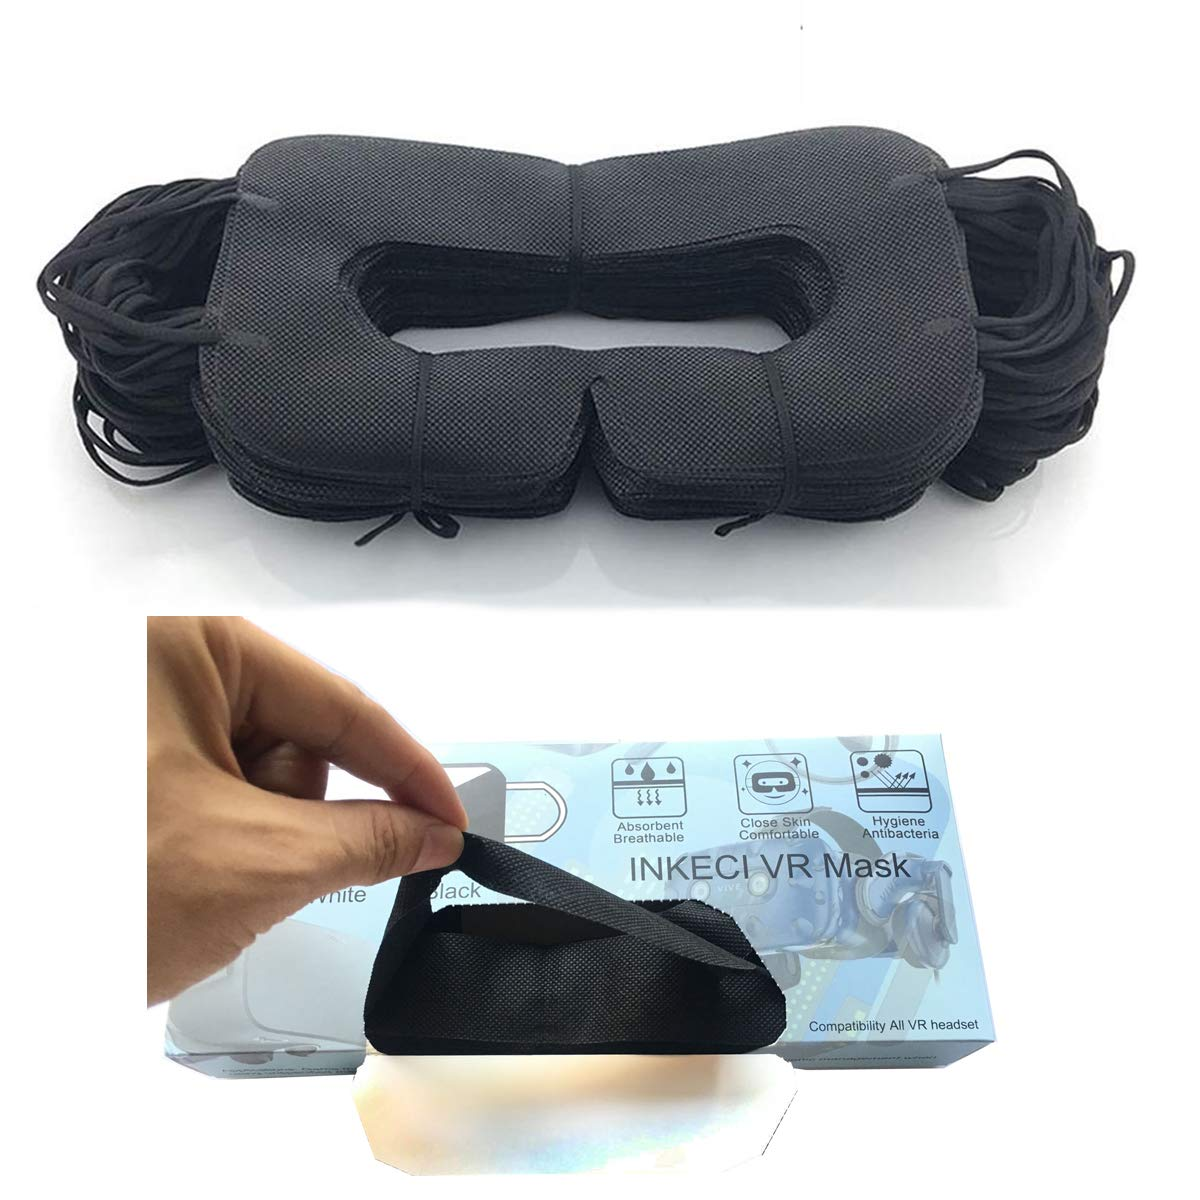 VR Mask Disposable Eye Cover Mask for Oculus/ HTC/Gear VR, Prevent Eye Infections ( Black 100 pcs)